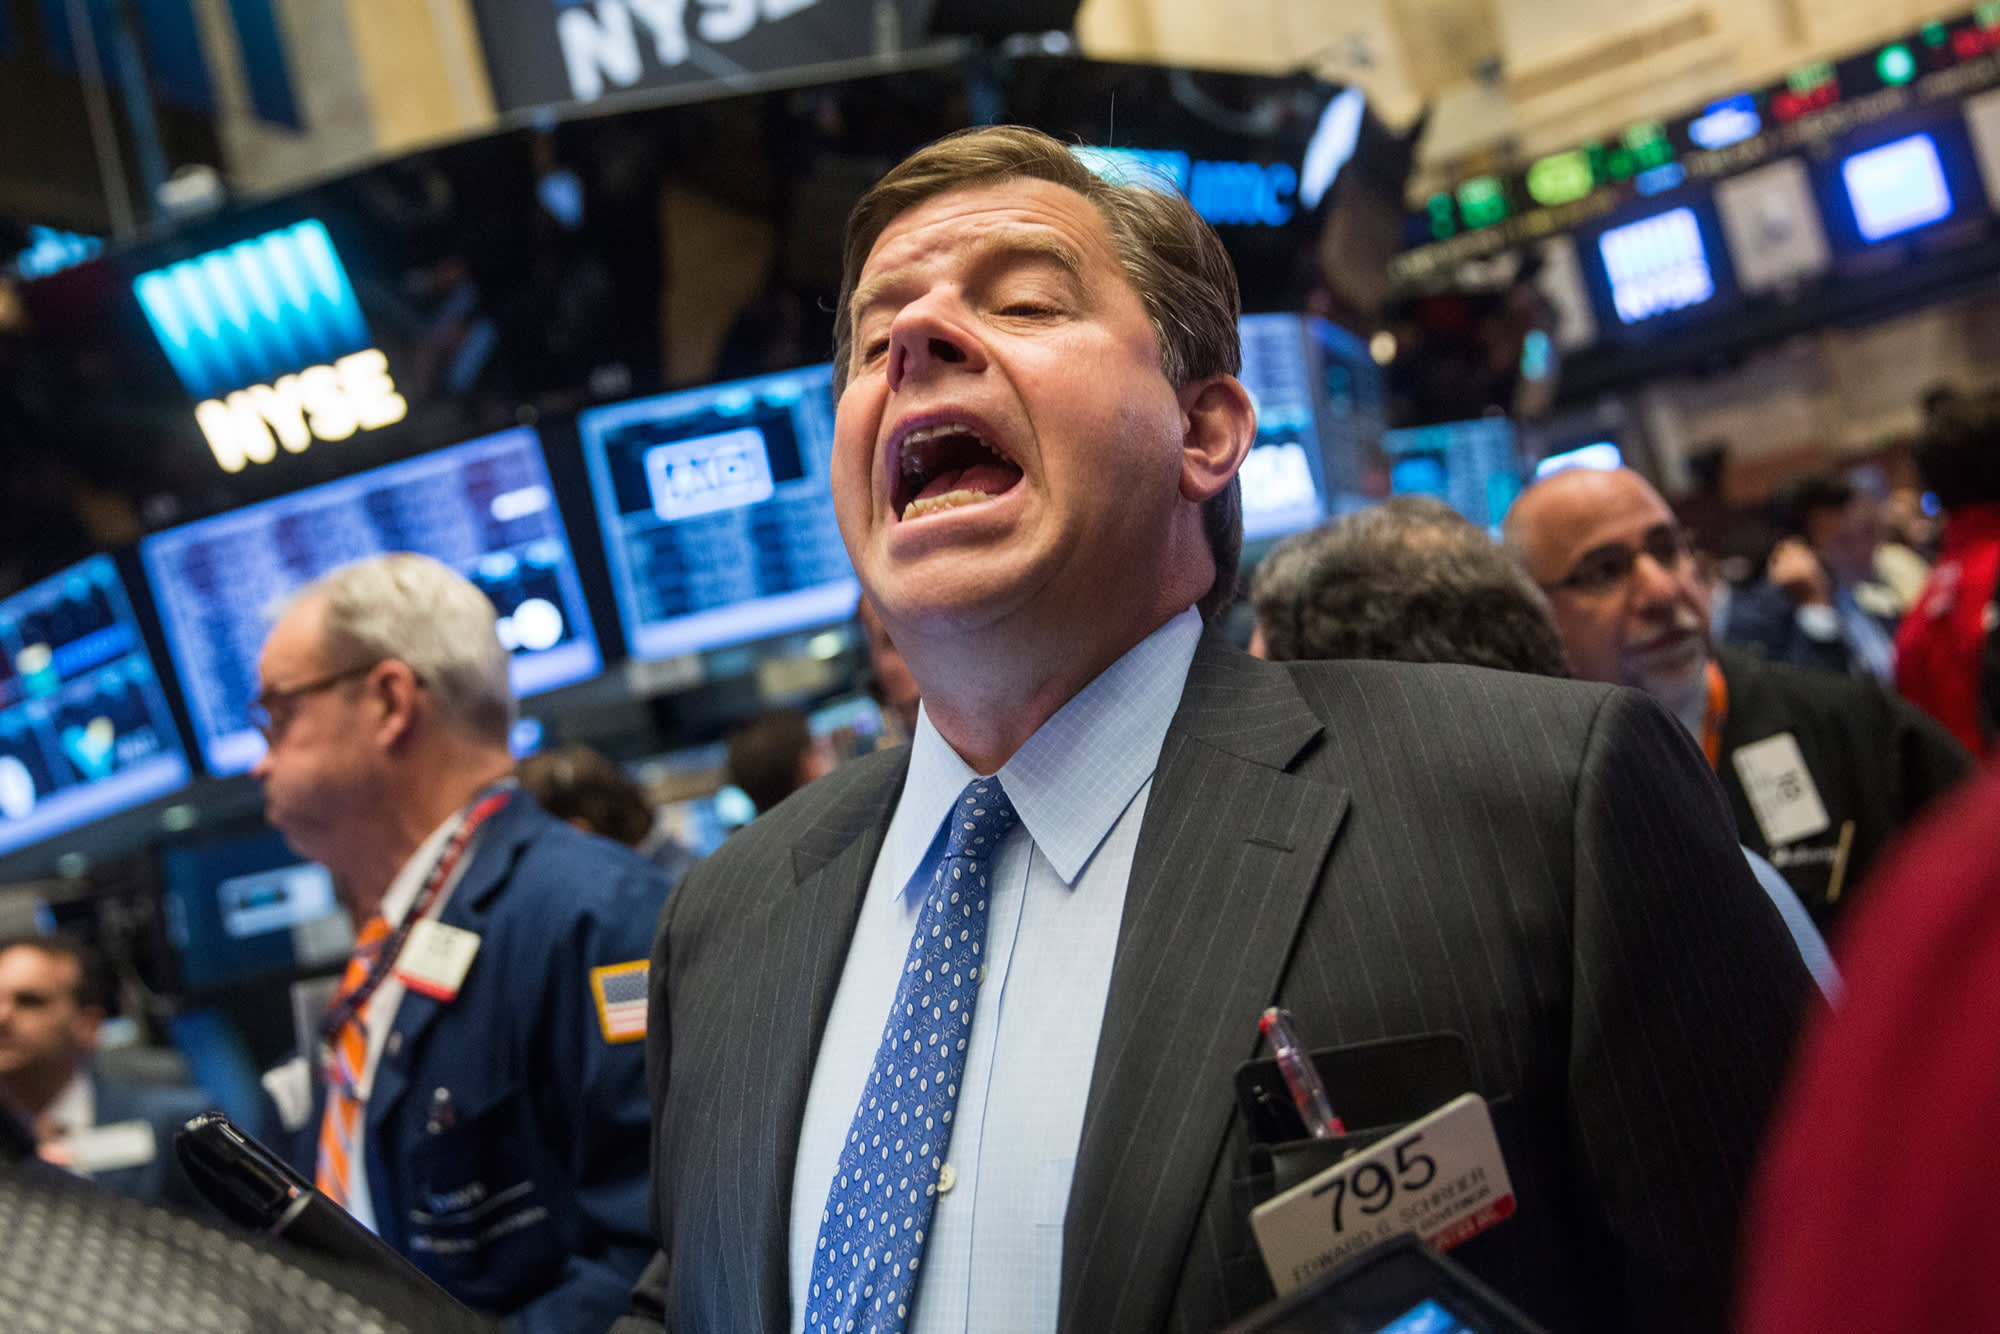 The stock market could be in for a 'VIXplosion,' says widely followed strategist Sven Henrich